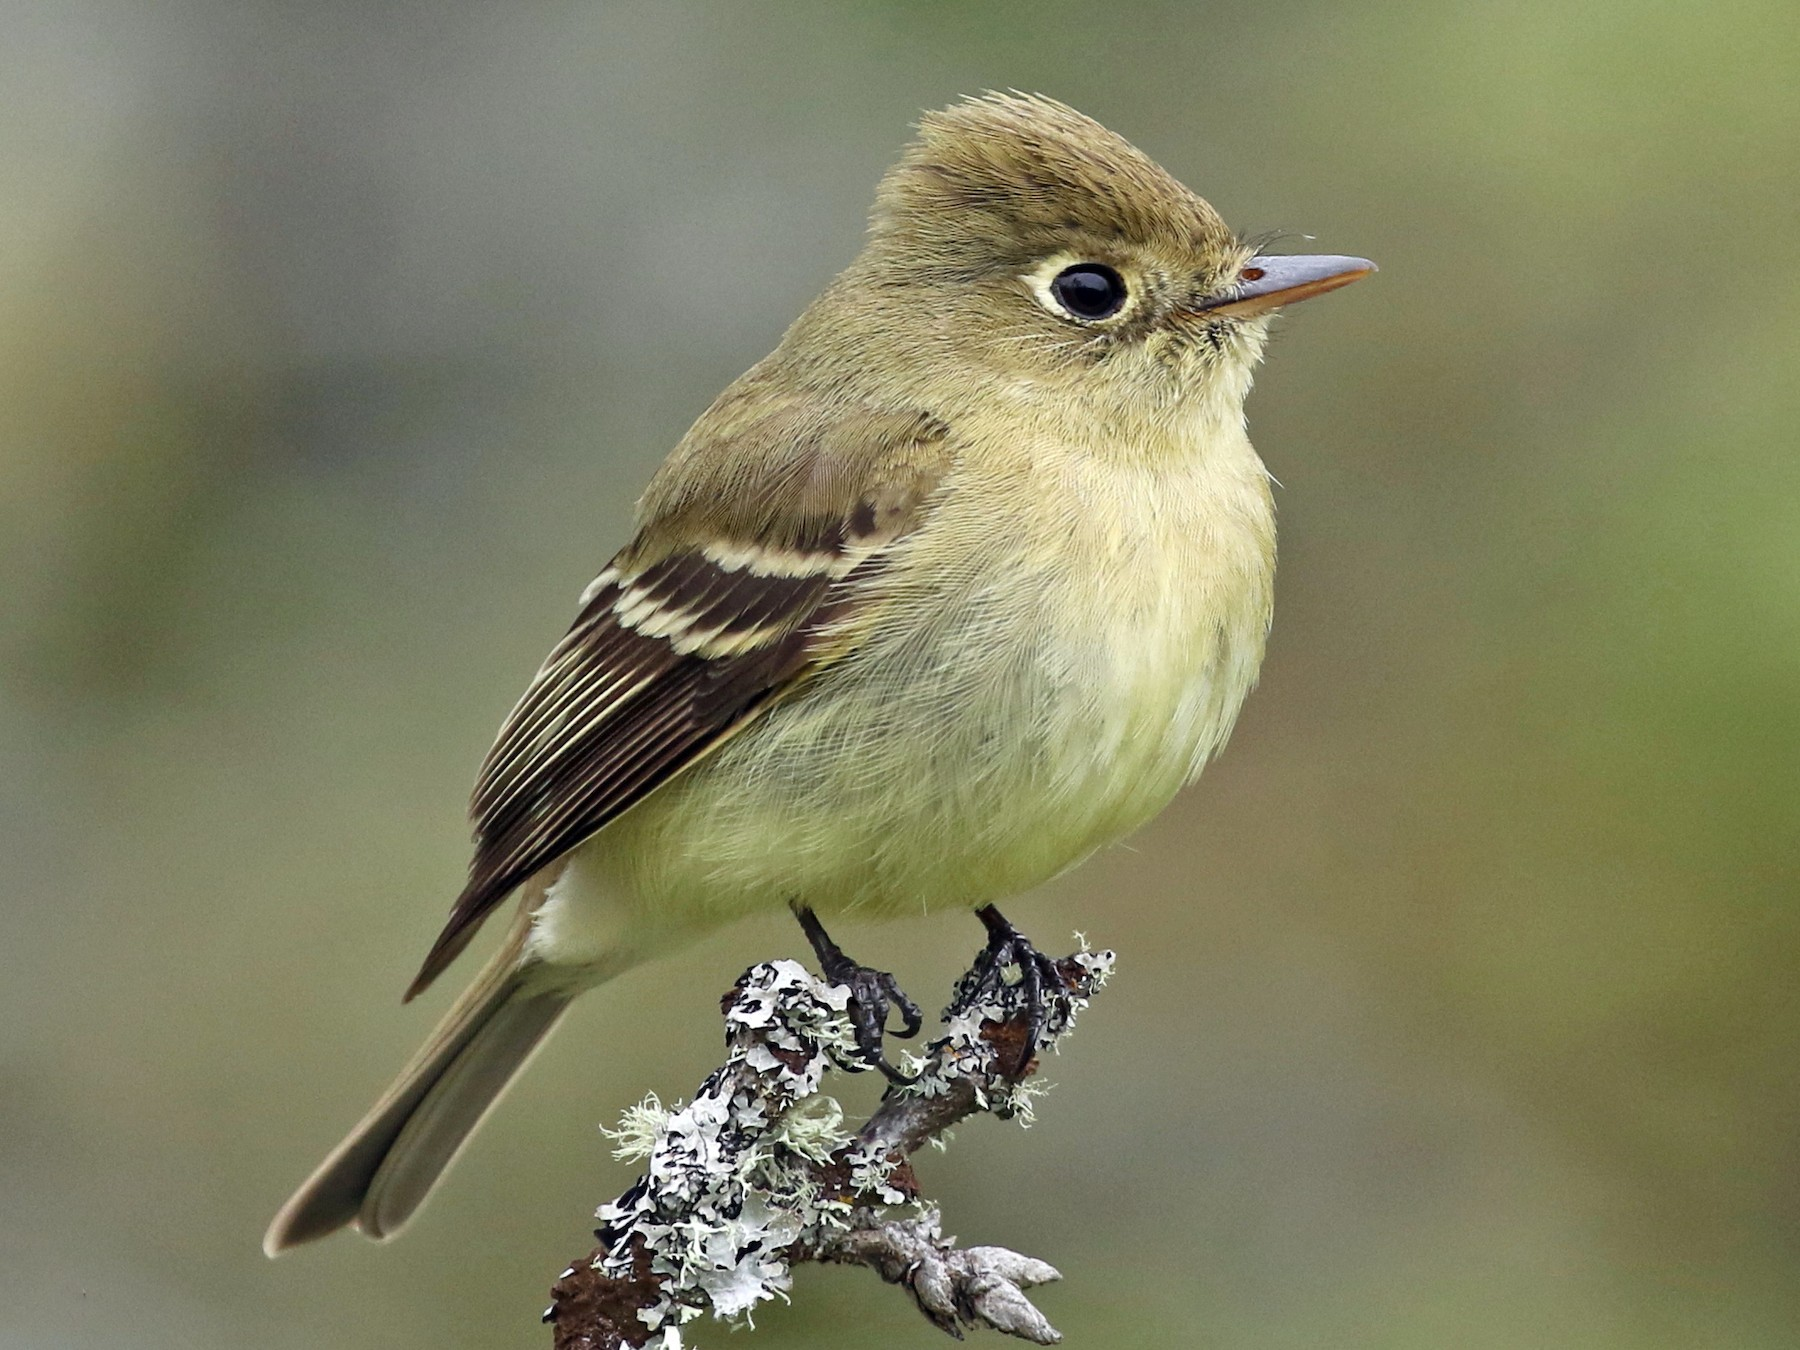 Pacific-slope Flycatcher - Liam Singh